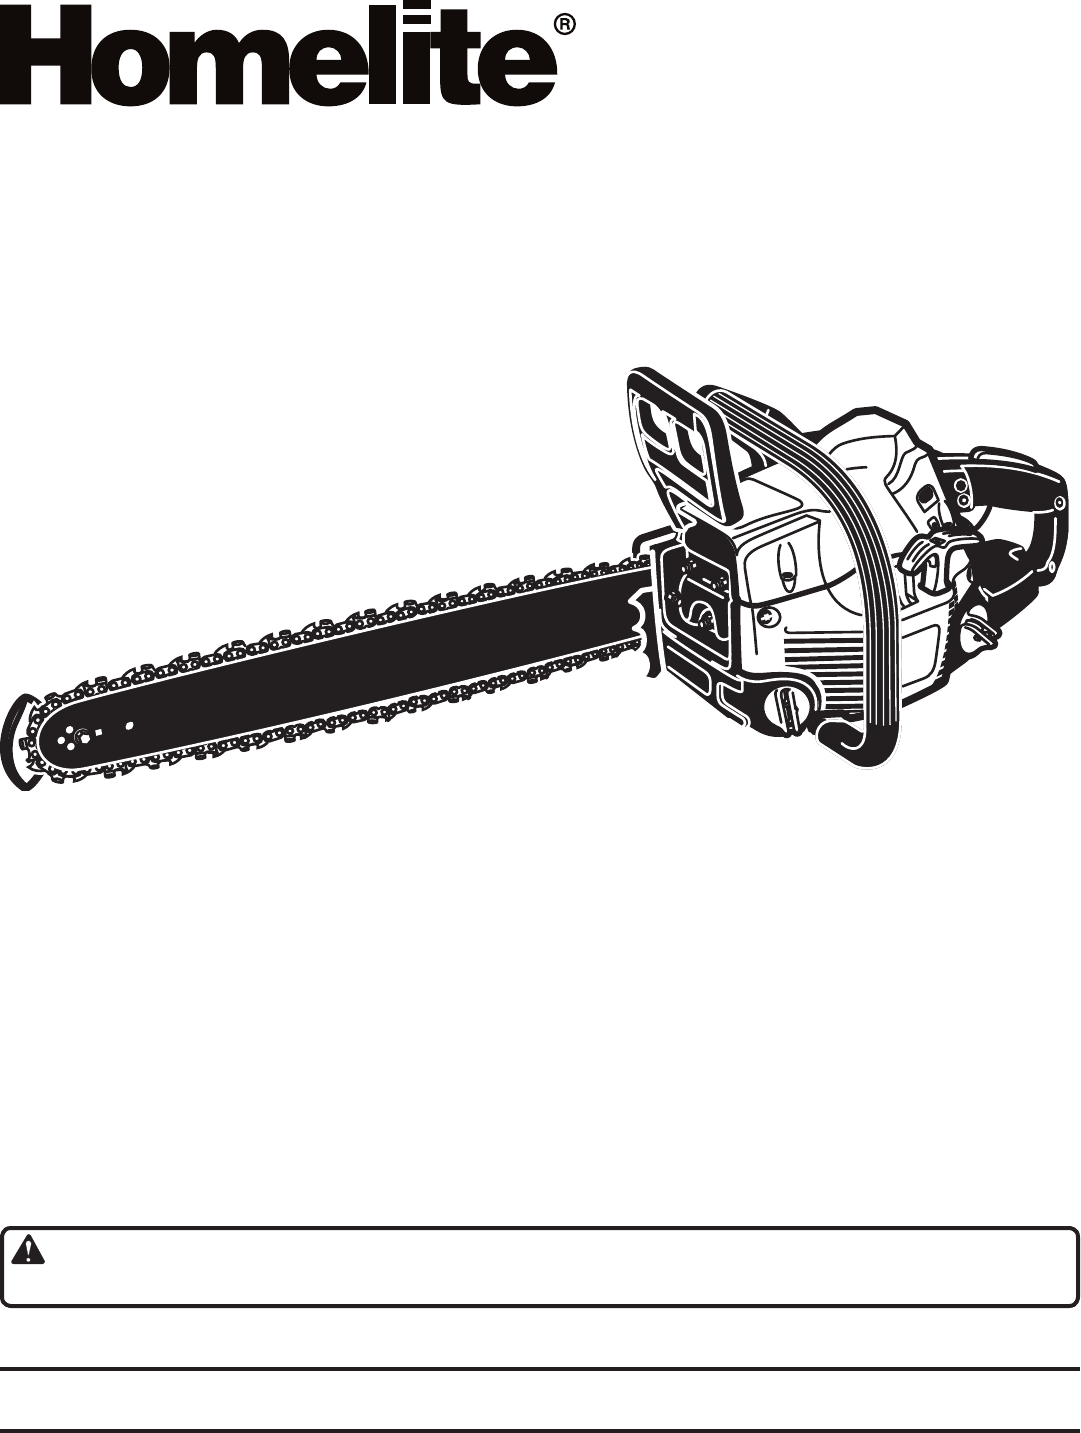 Homelite chainsaw ut1051718 user guide manualsonline operators manual greentooth